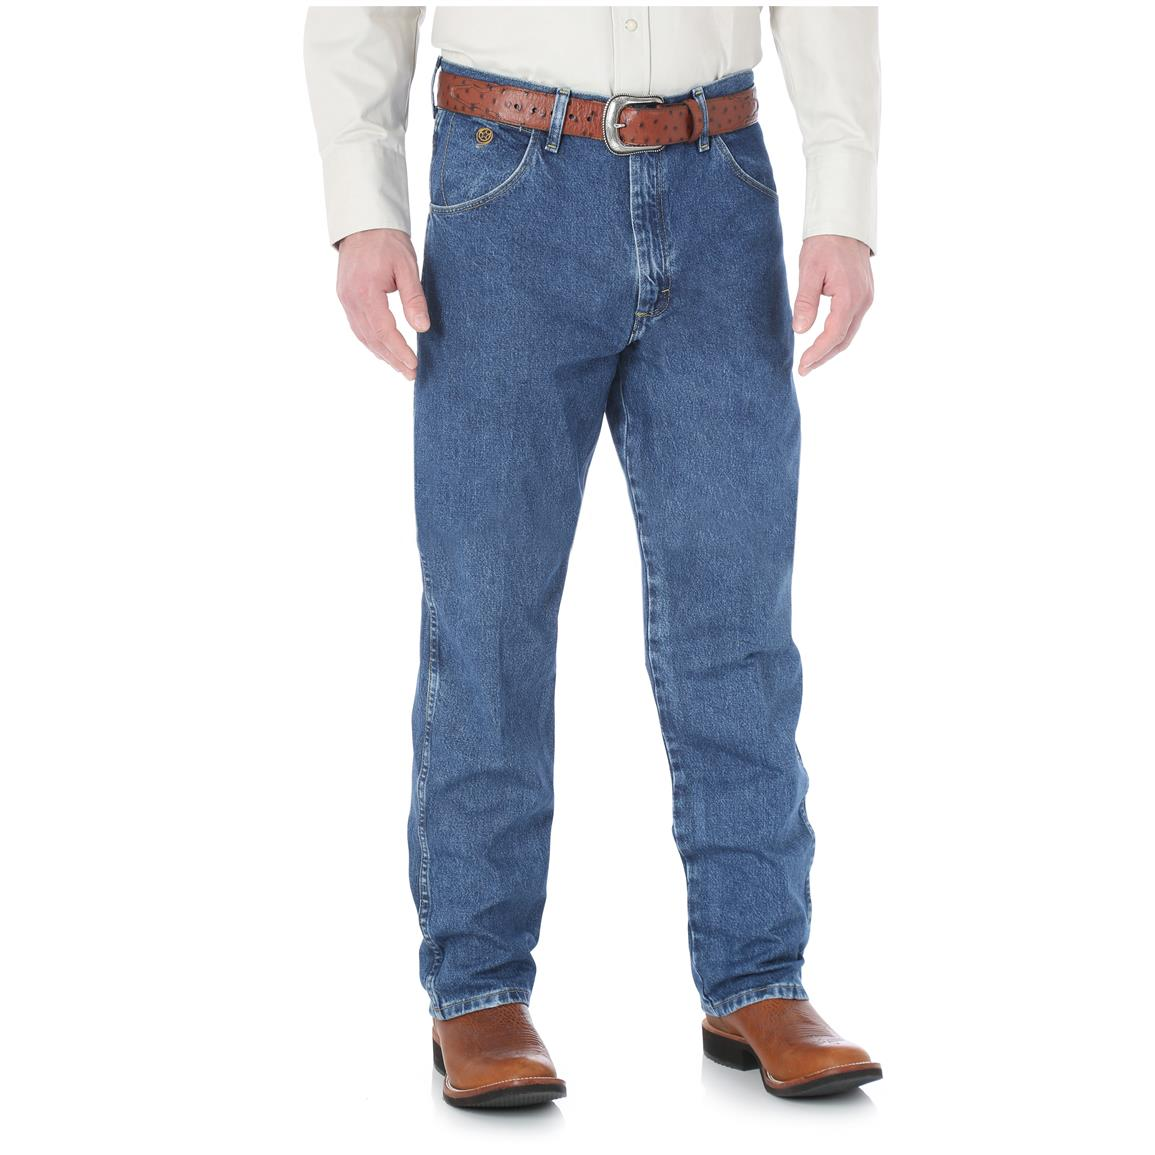 Wrangler George Strait Cowboy Cut Men's Relaxed Fit Jean, Denim